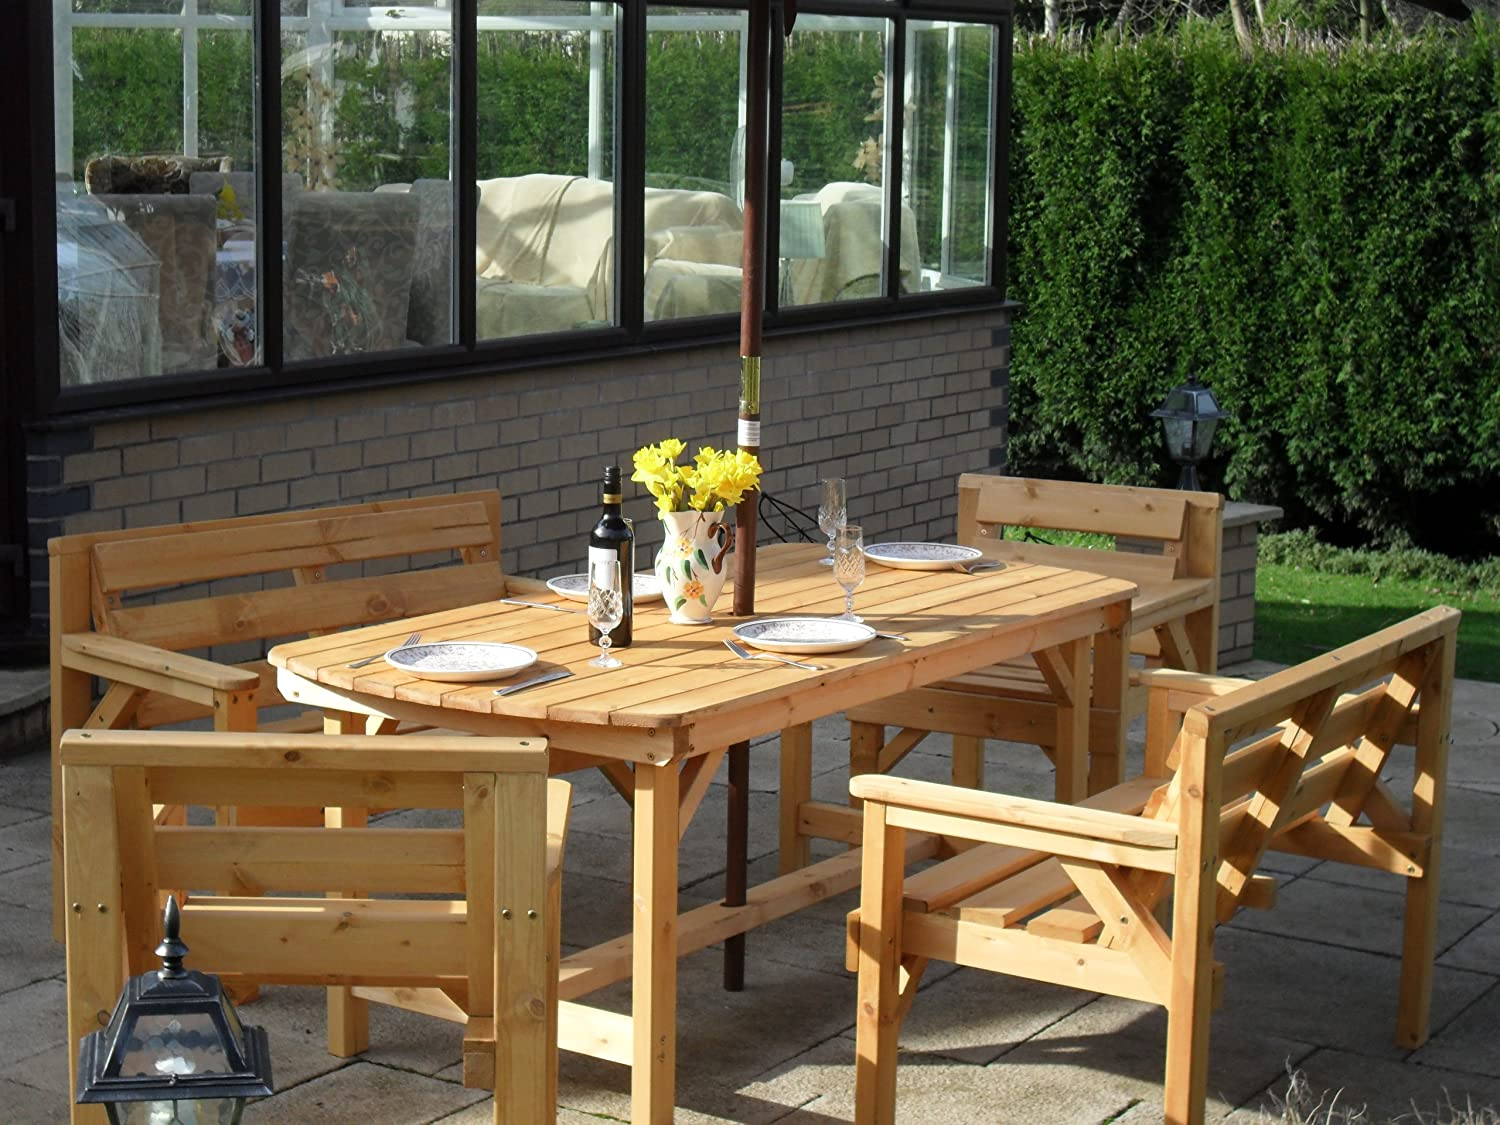 5 Piece Wooden Garden Furniture Set, FULLY ASSEMBLED, UK Manufactured:  Amazon.co.uk: Garden U0026 Outdoors